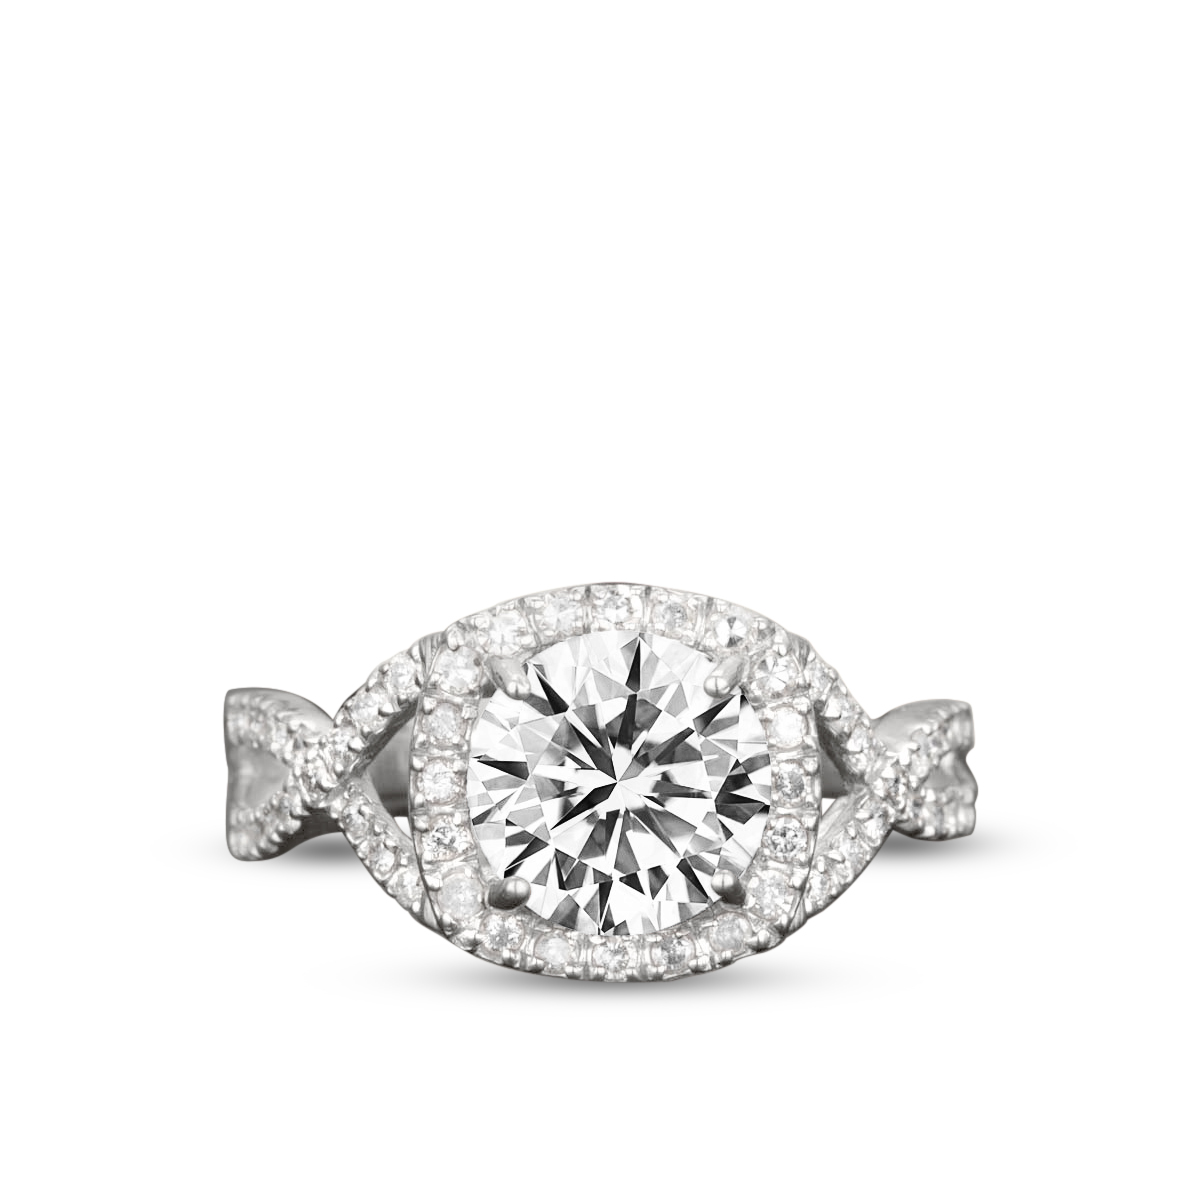 Art Deco 1.25 Carat Round Cut Moissanite